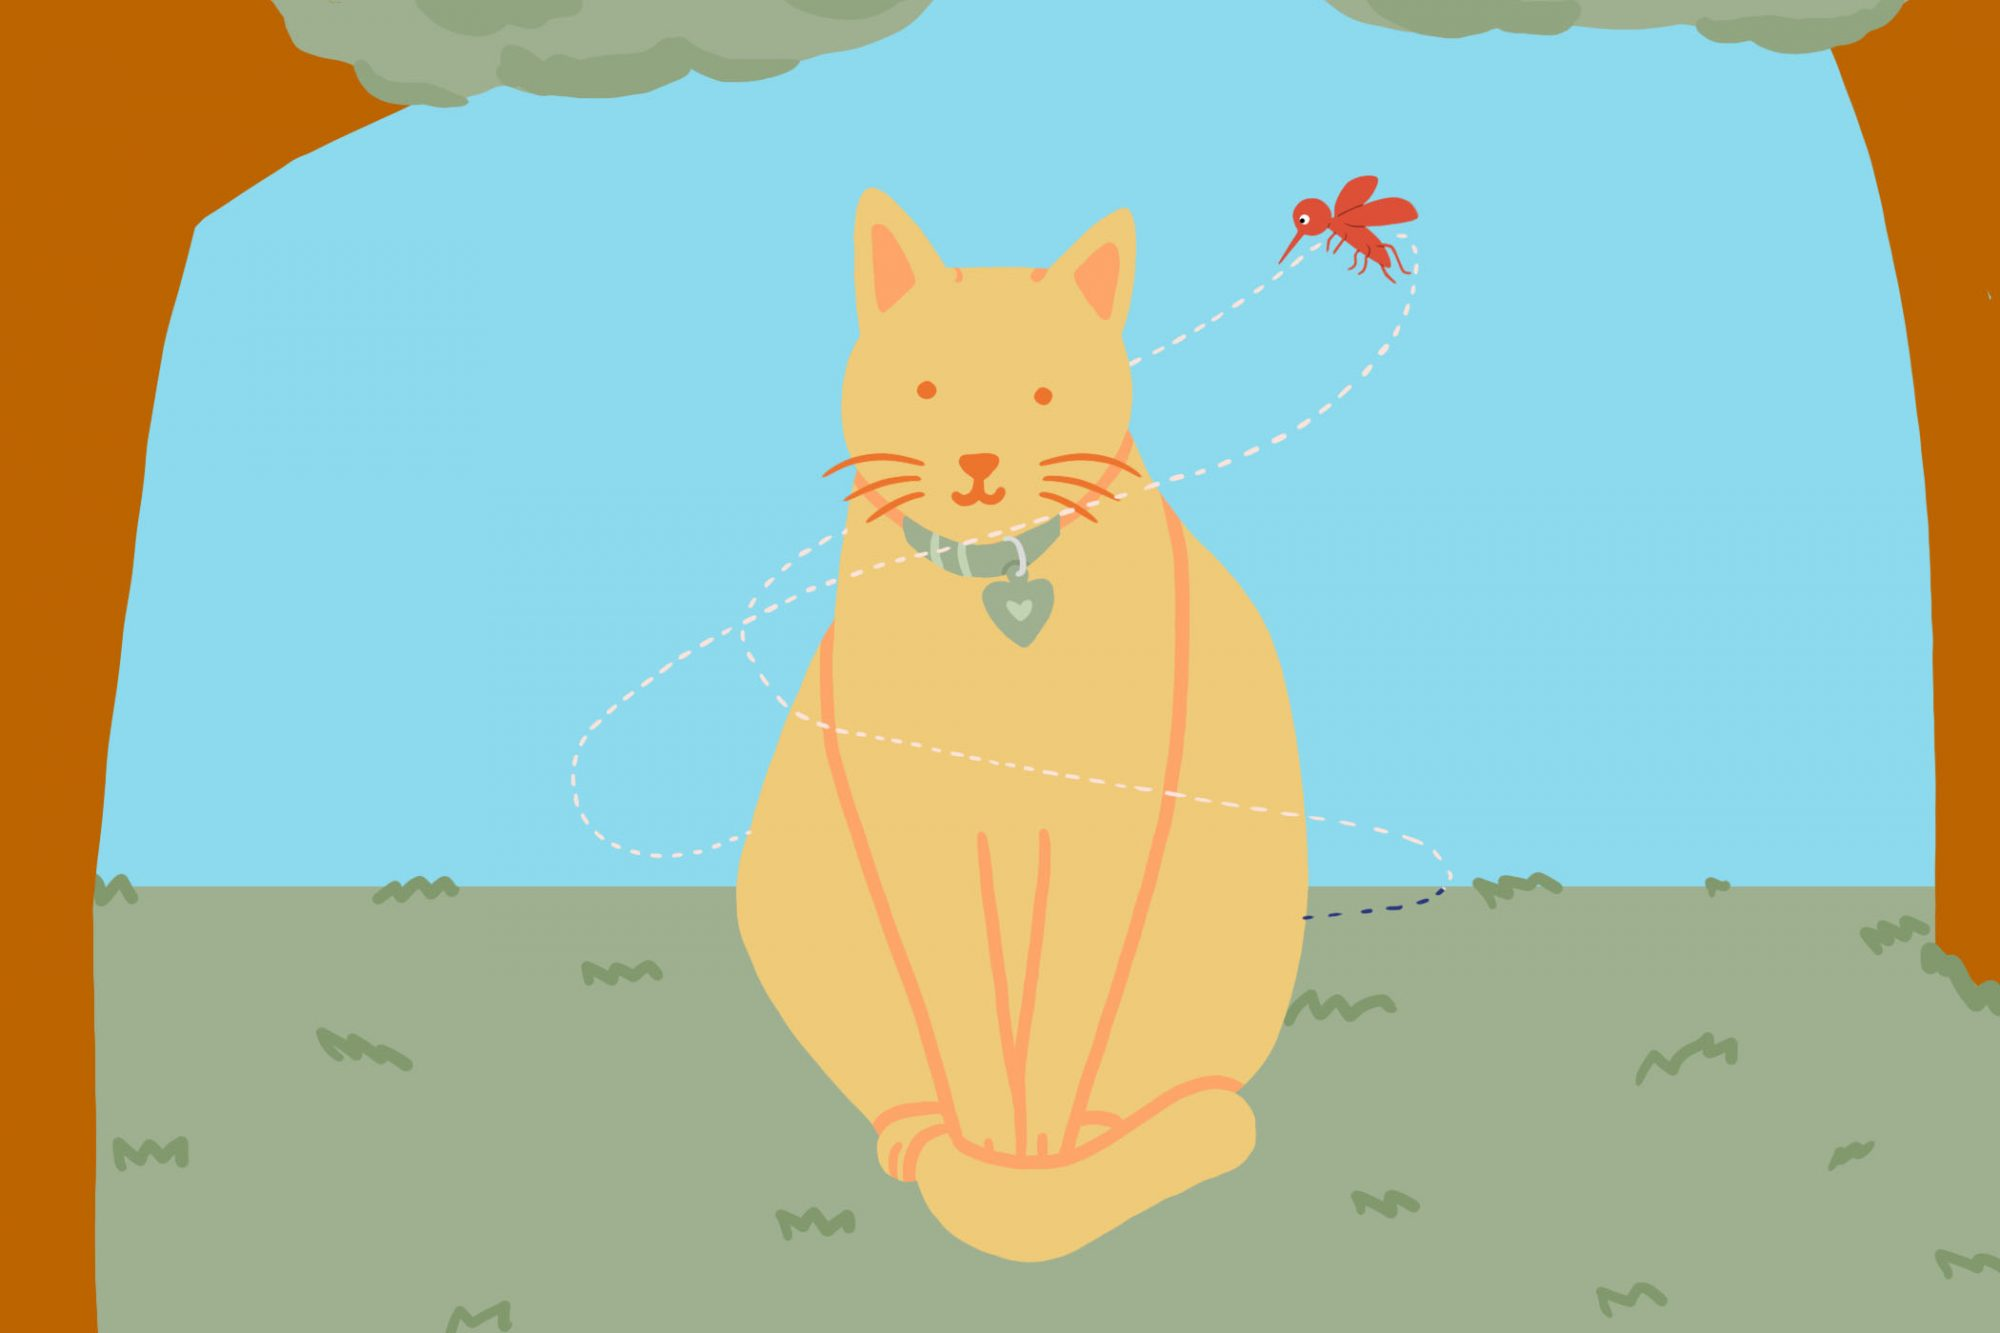 Illustration of mosquito flying around a cat